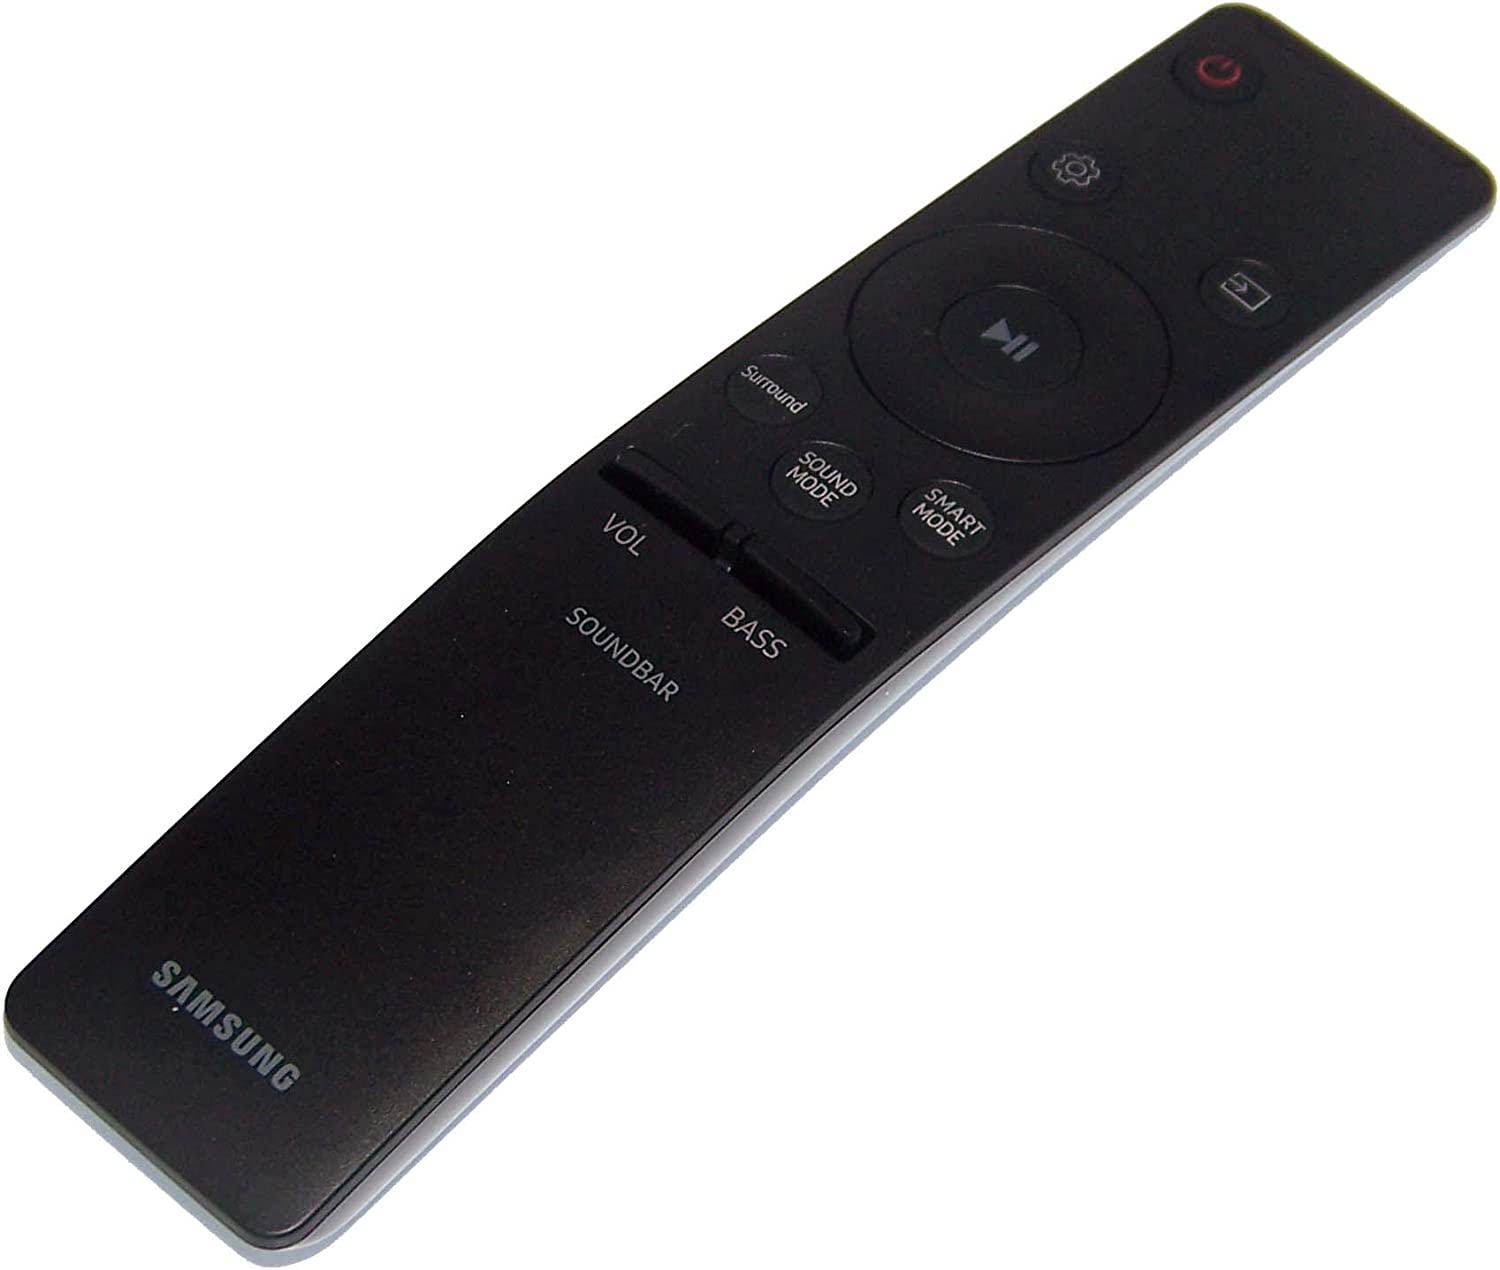 OEM Samsung Remote Control Supplied with HWMS6500 HW-MS6500 HW-MS750 HWMS750